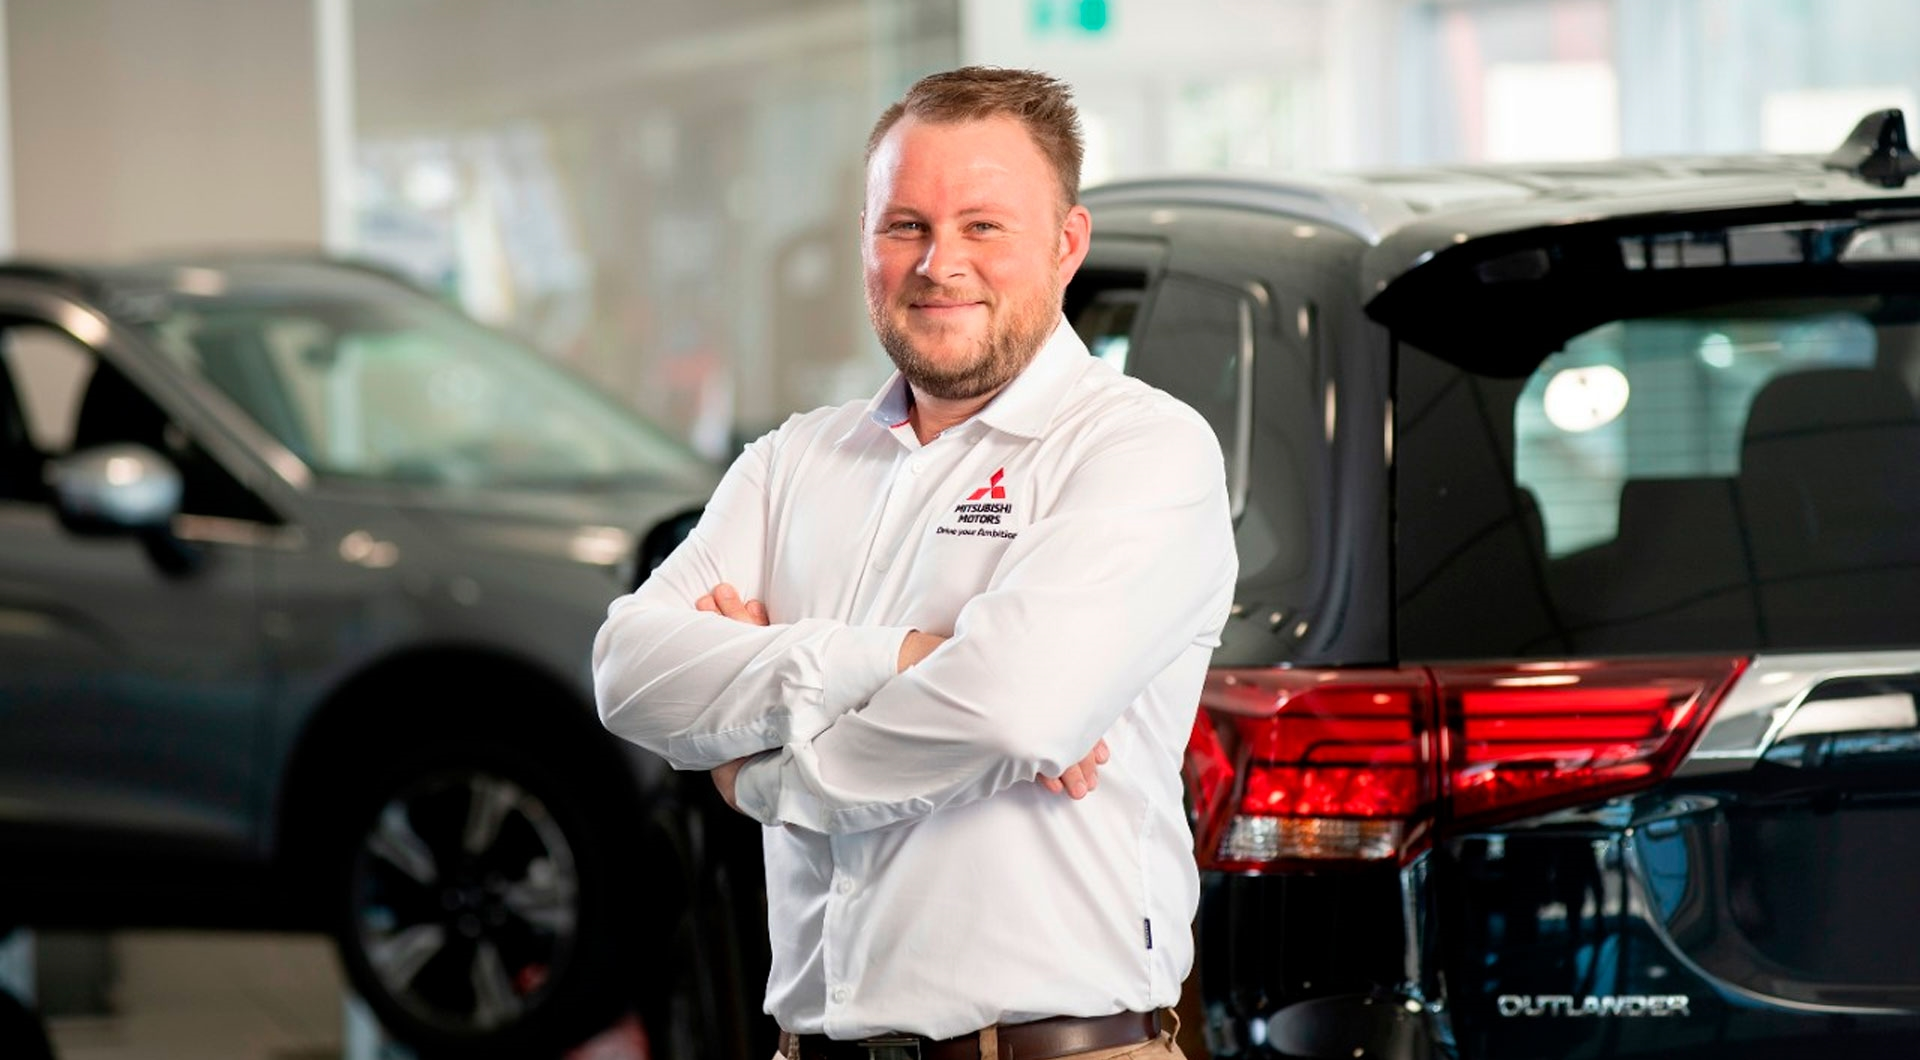 Service Manager and Master Mitsubishi Technician Dylan